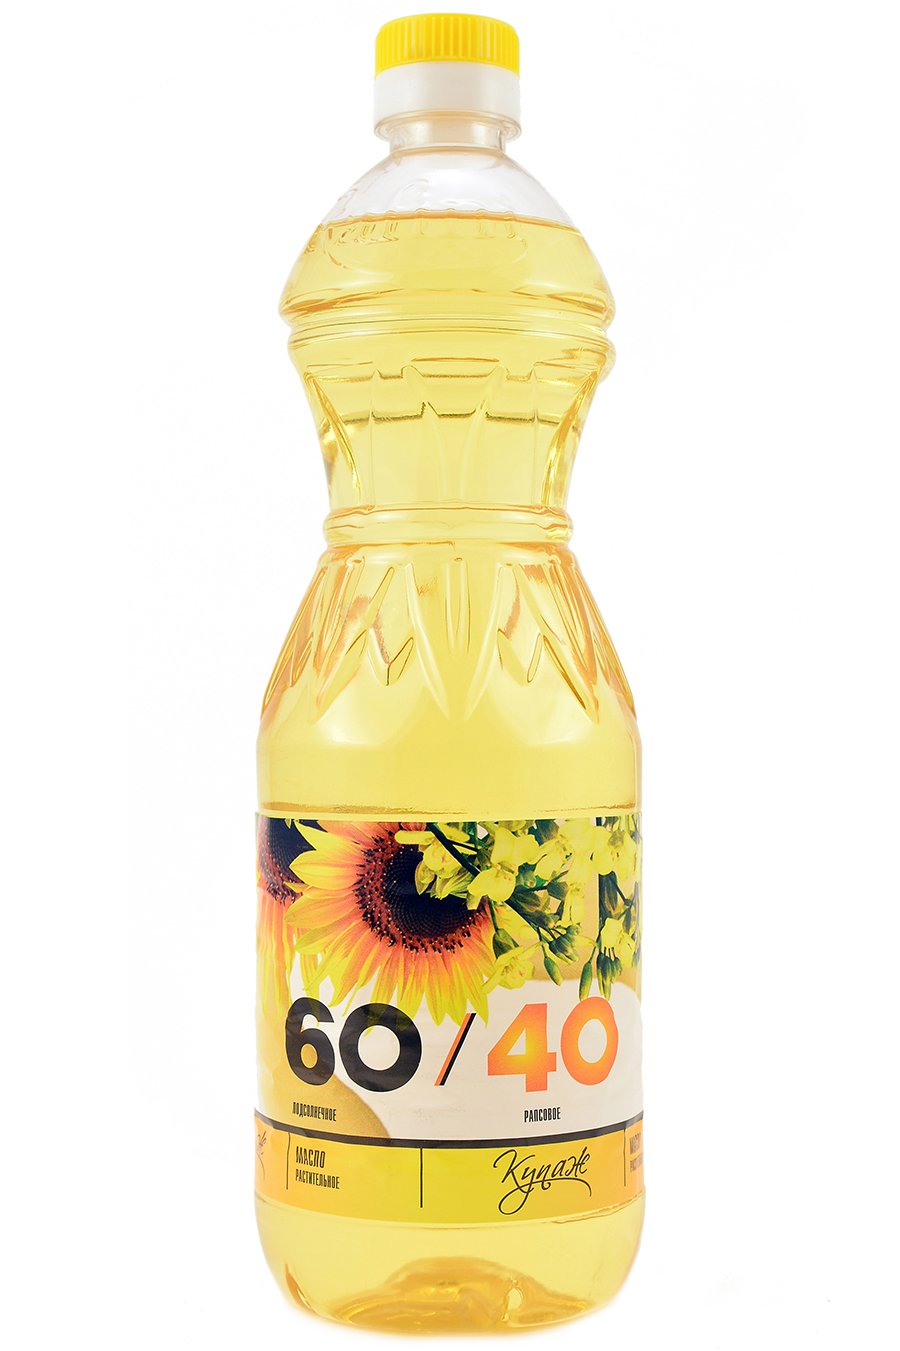 Sunflower and hemp oil PNG Image